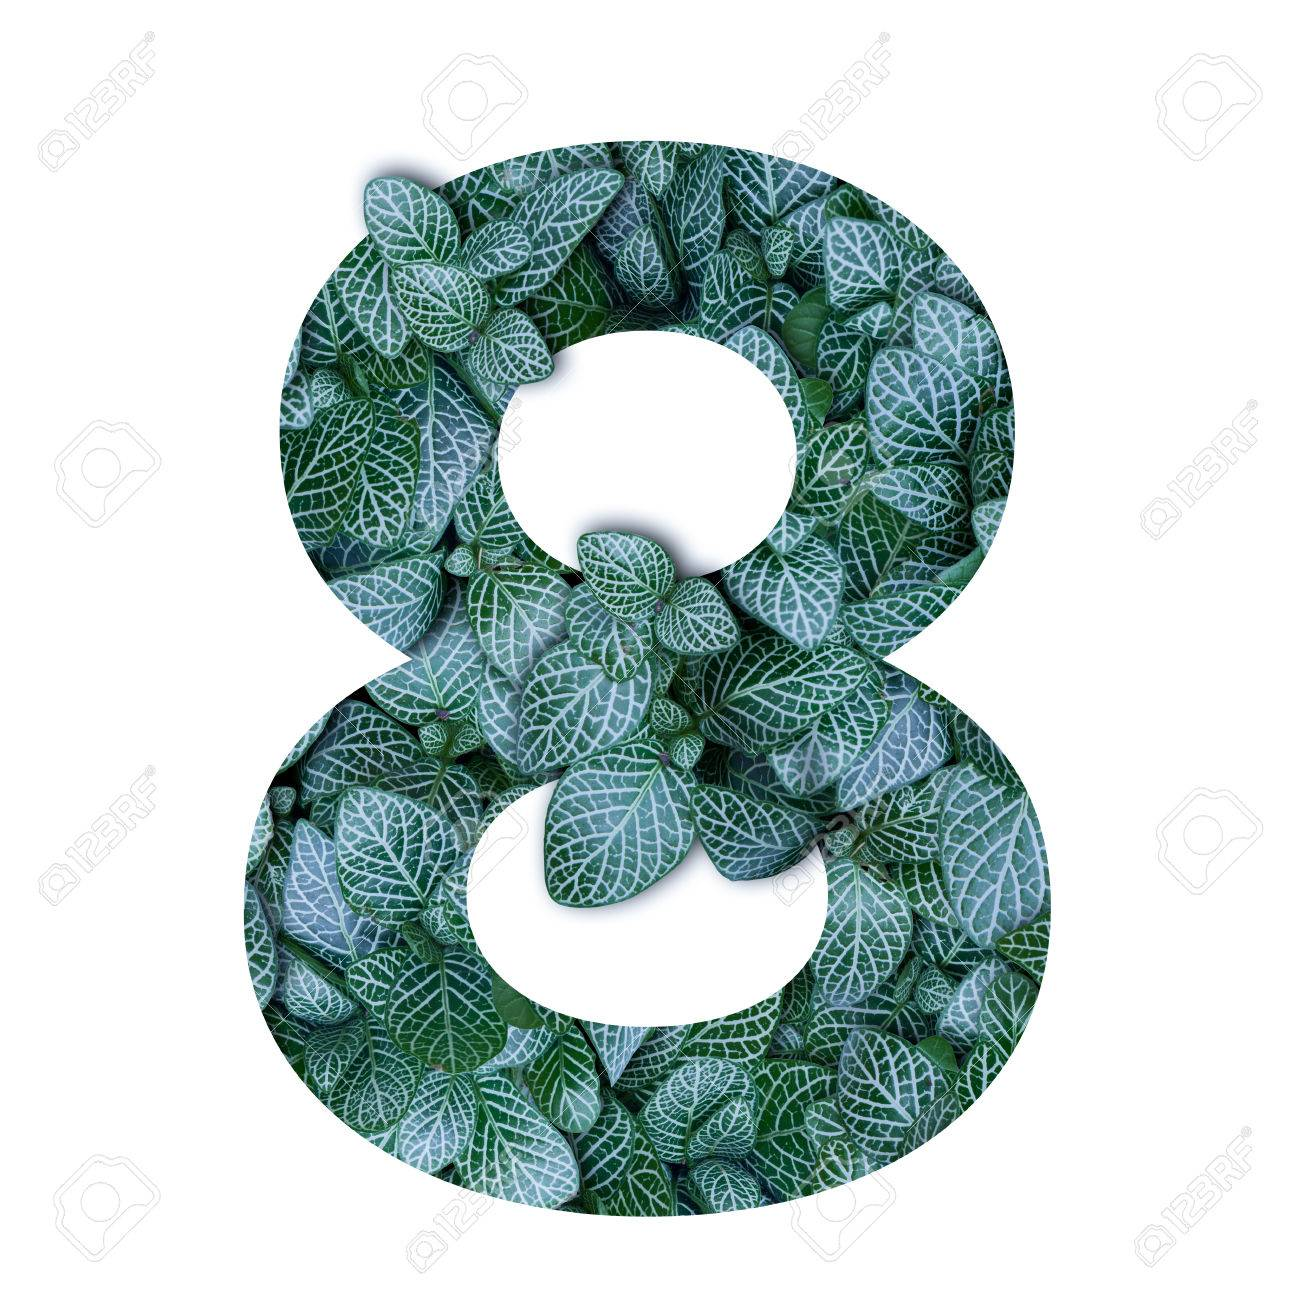 80167070-nature-concept-alphabet-of-green-leaves-in-number-eight-shape.jpg